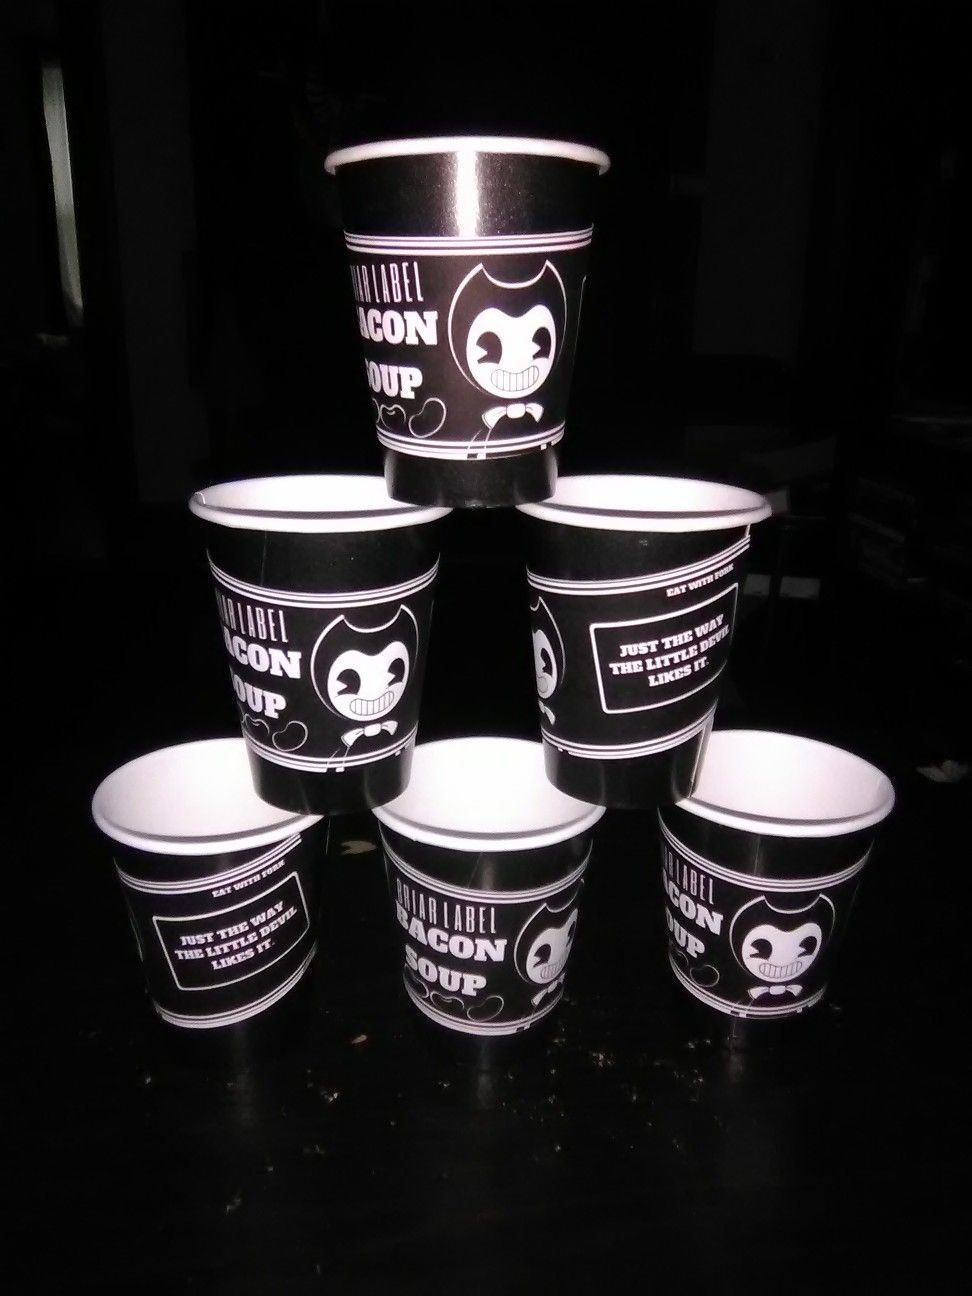 Bendy And The Ink Machine Bacon Soup Cups Made From Printed Paper